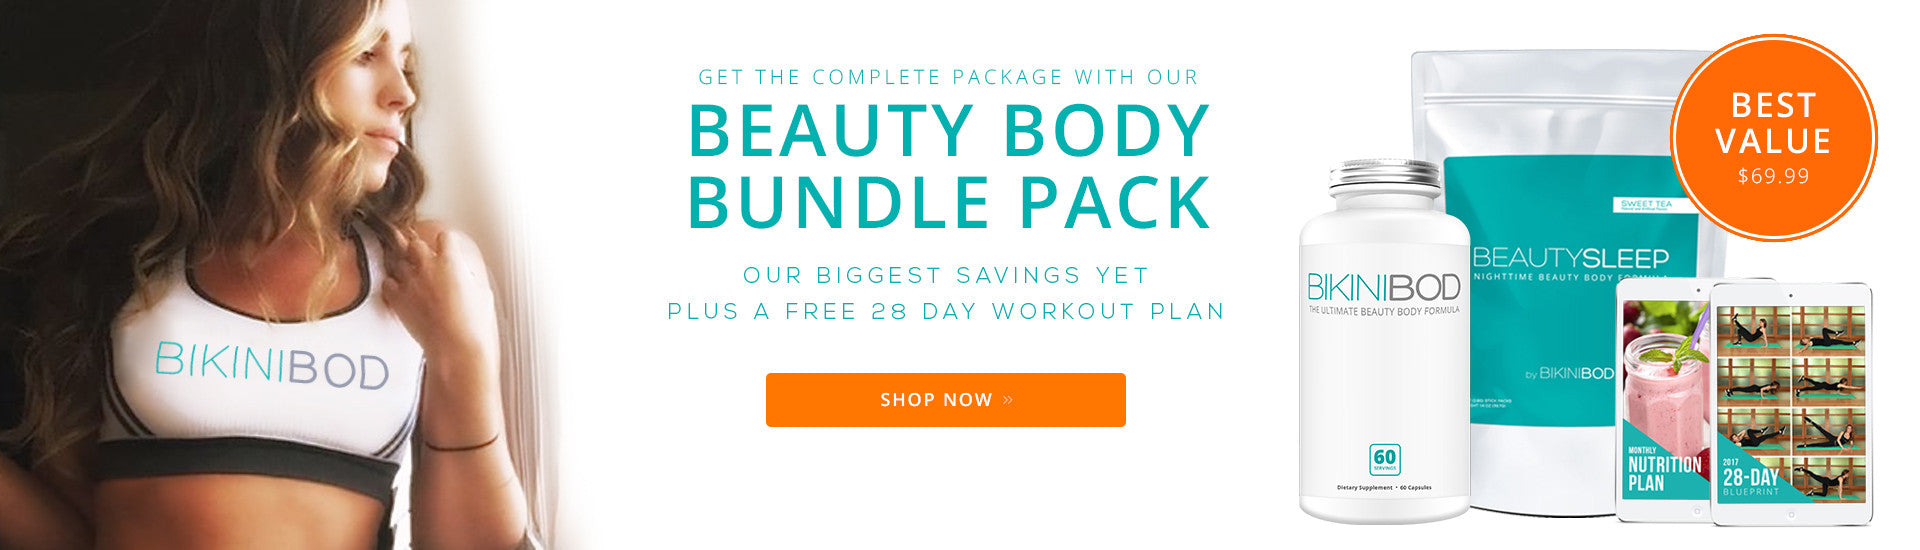 BikiniBOD Bestie Fit Pack - Limited Time Offer!